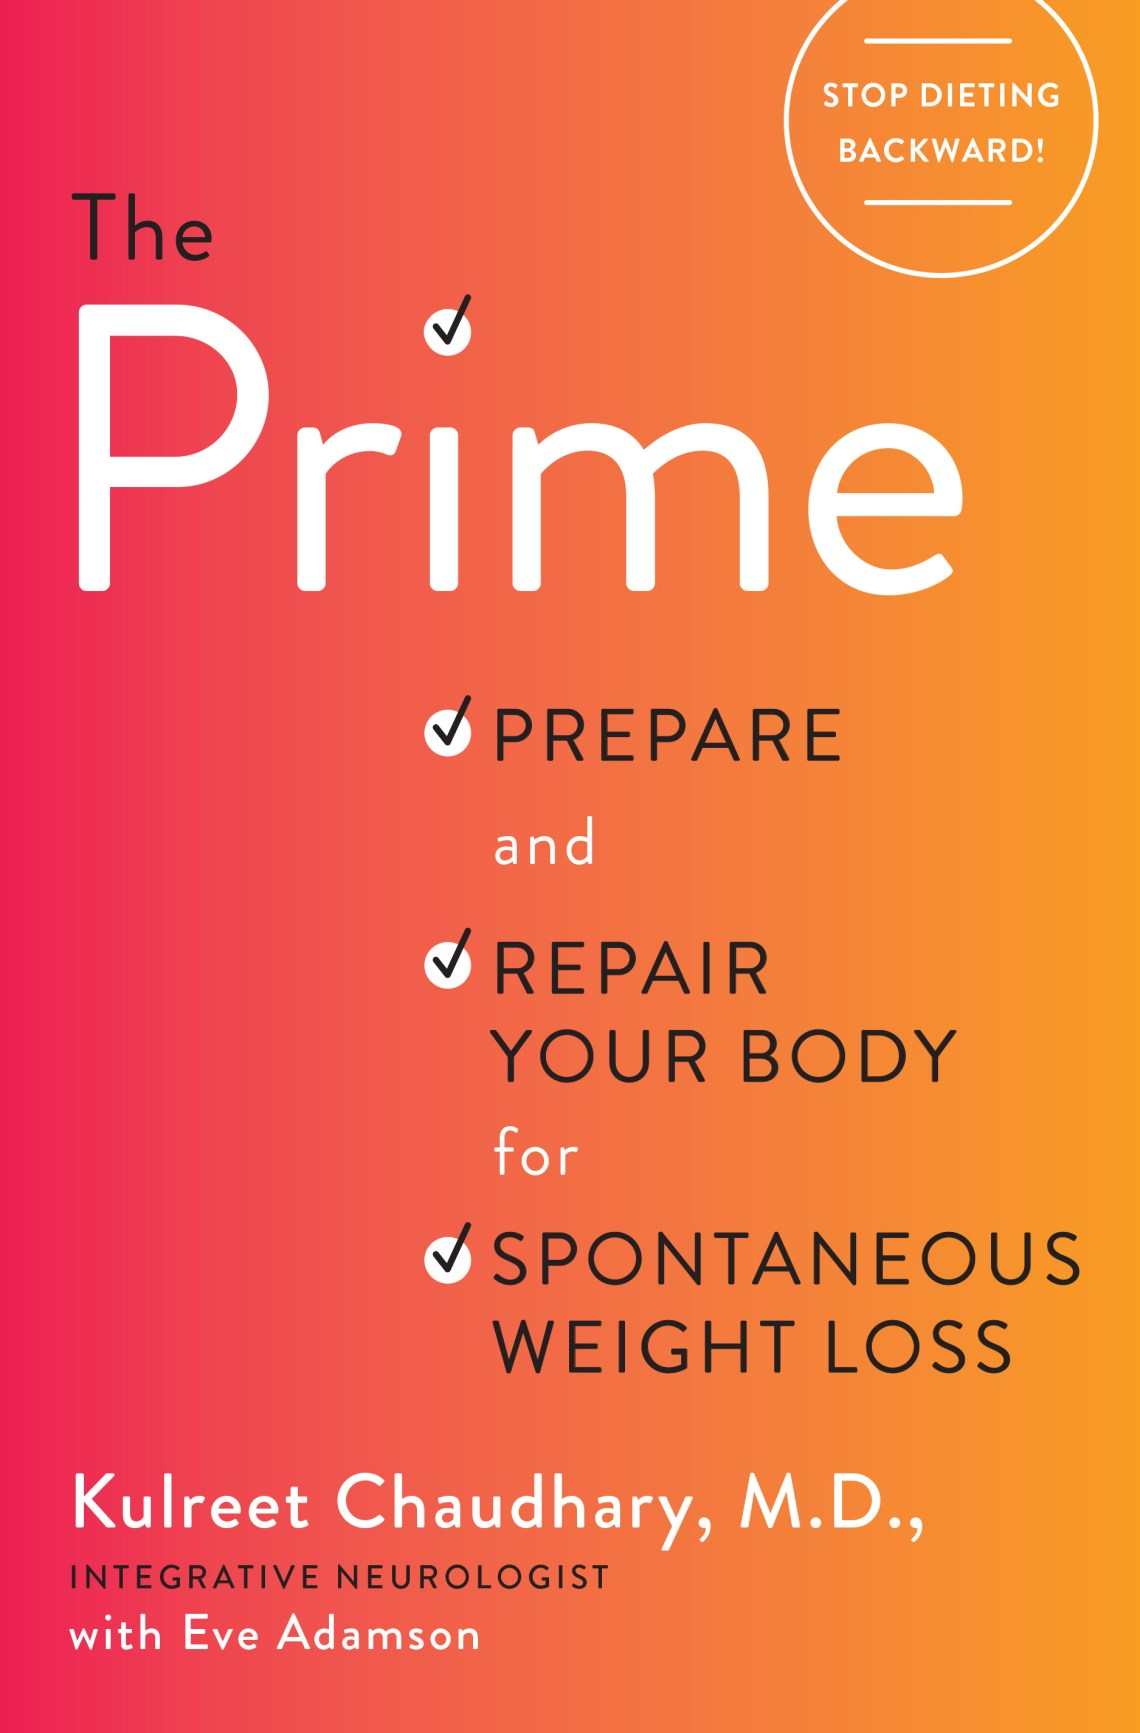 The Prime Review - Stop Dieting Backwards #Giveaway